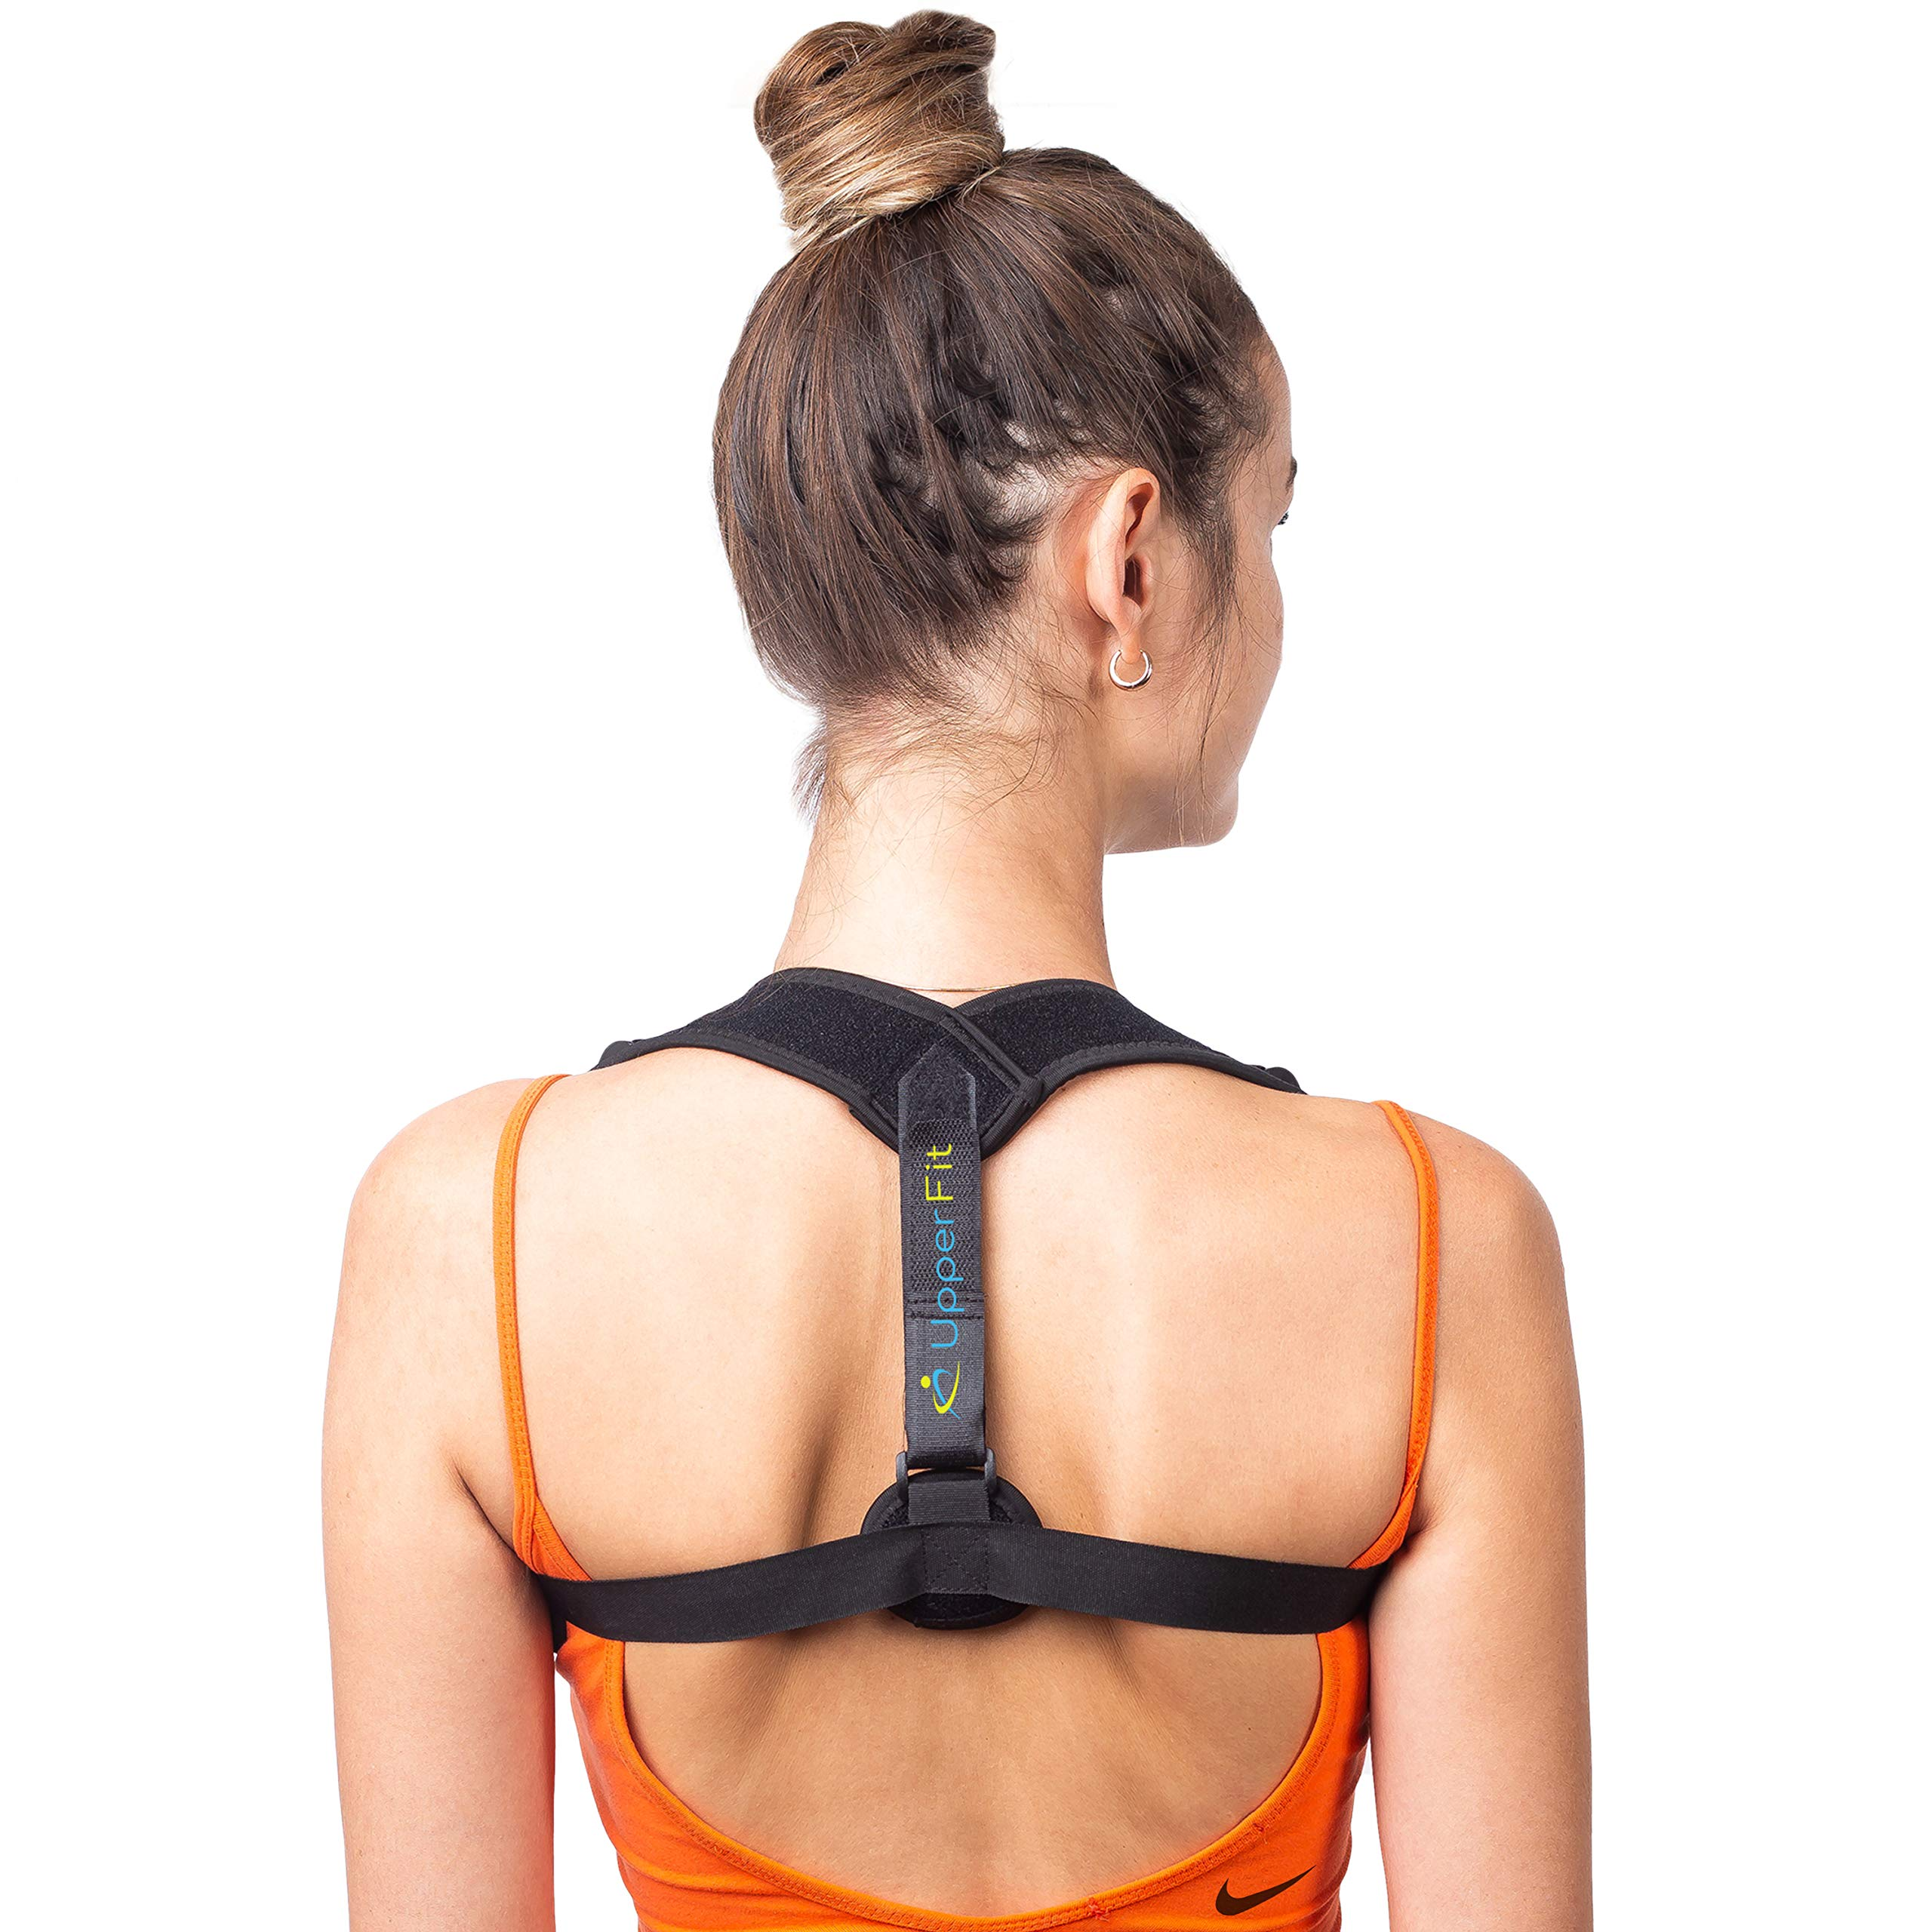 UpperFit Back Posture Corrector for Women Men - Muscle Memory Programming Posture Correct Brace - Back Brace Support - Clavicle Support Posture Support for Upper Back Pain Relief with Kinesiology Tape